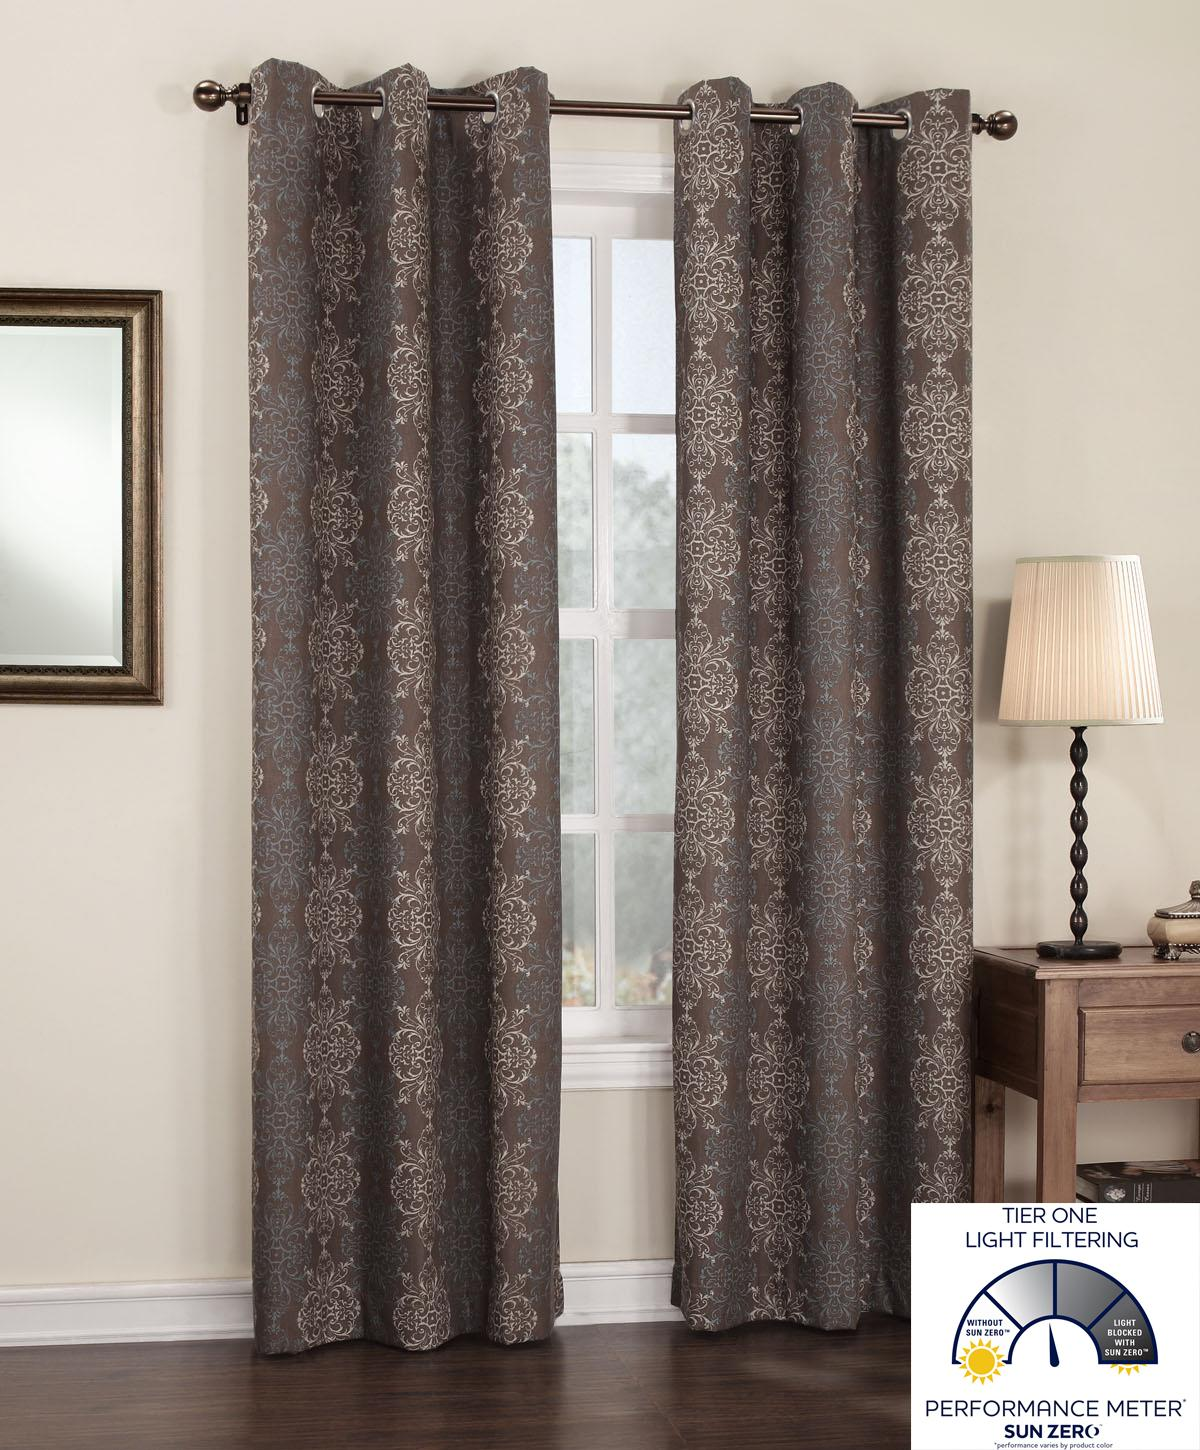 about com grey thermal curtains faqs guides insulated between geometric curtain black the white what is overstock difference and blackout